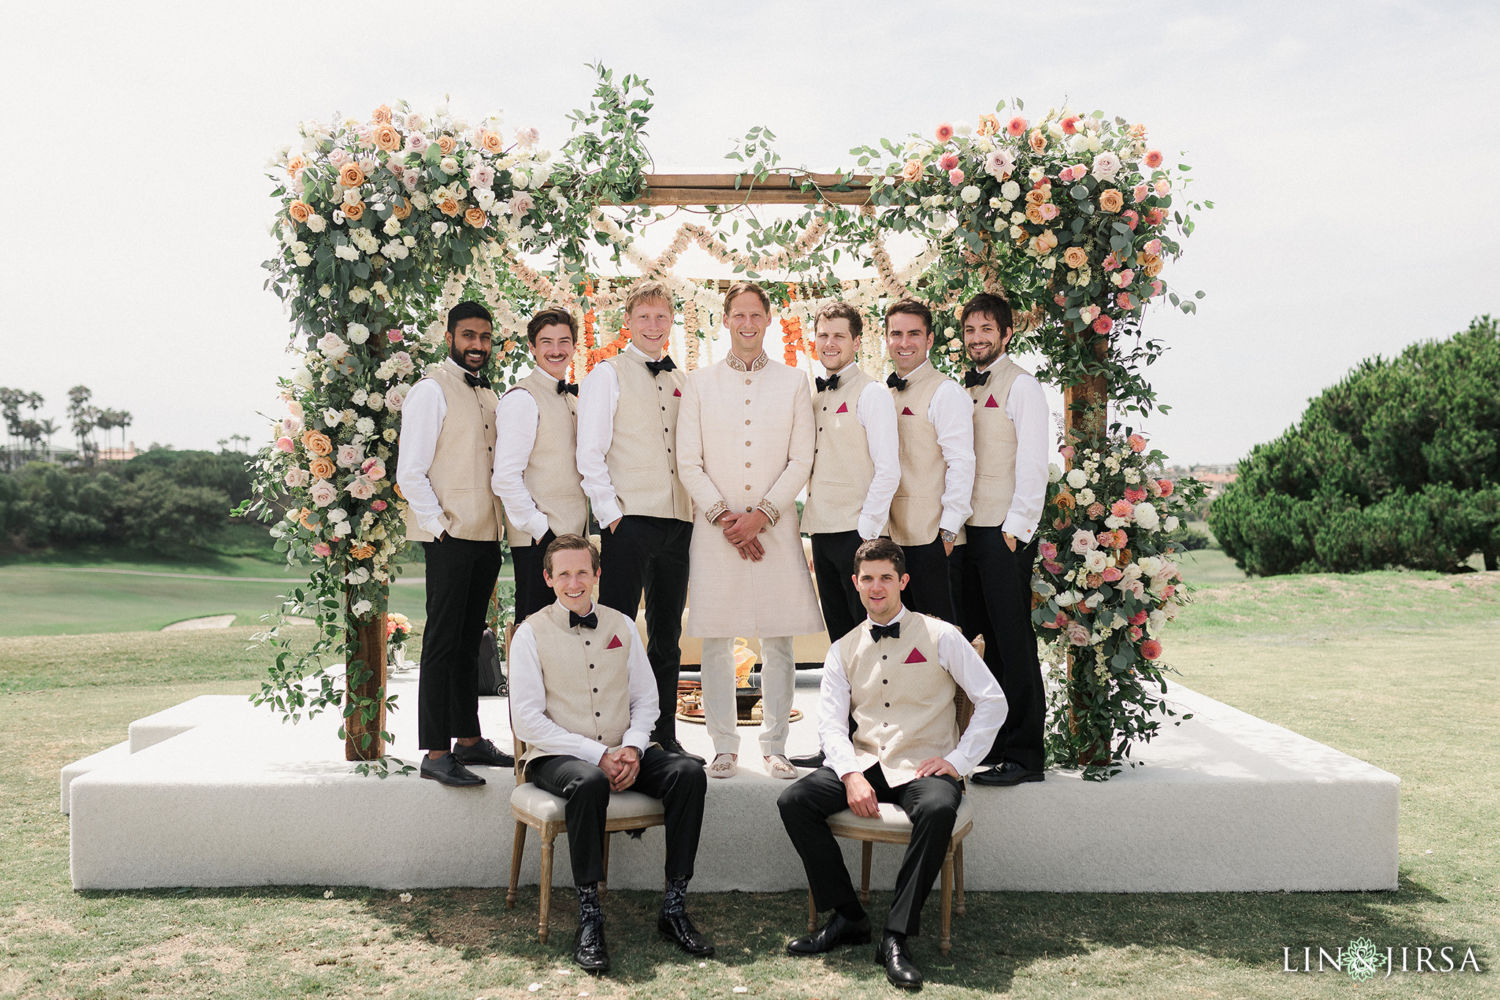 Groomsmen Monarch Beach Resort Filmic Indian Wedding Ceremony 02